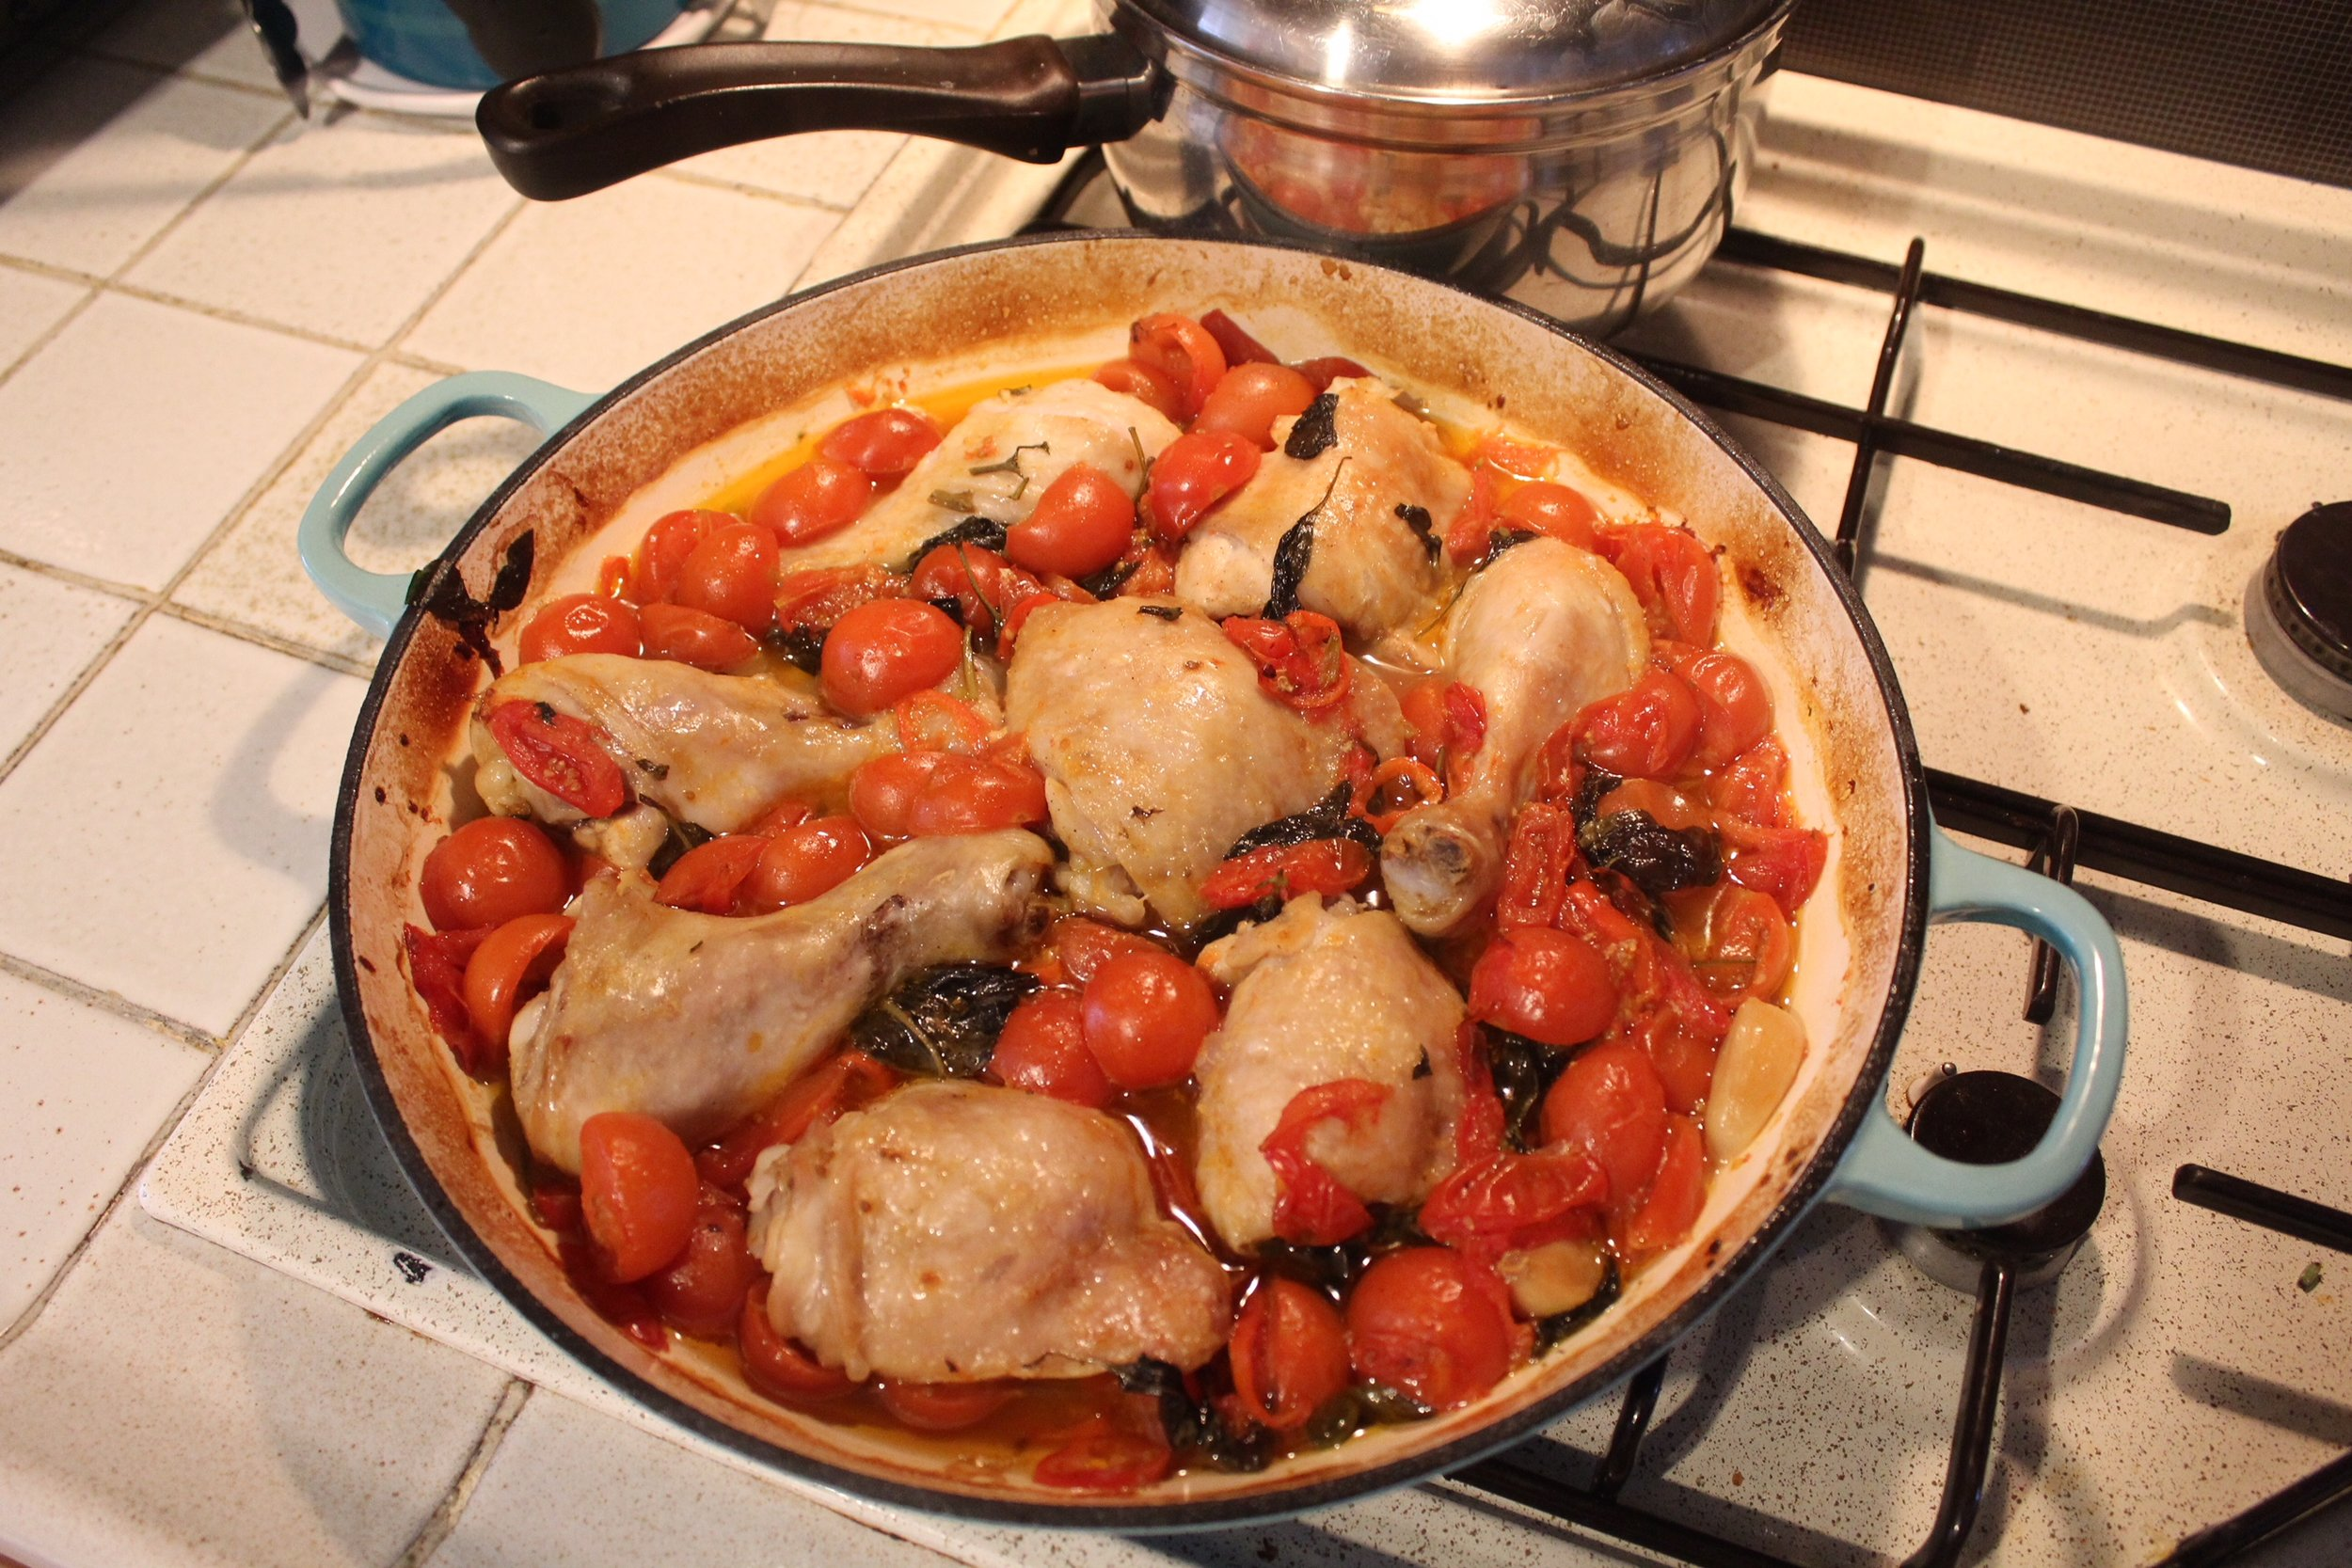 180219 - JL - Chicken with Tomatoes.jpg